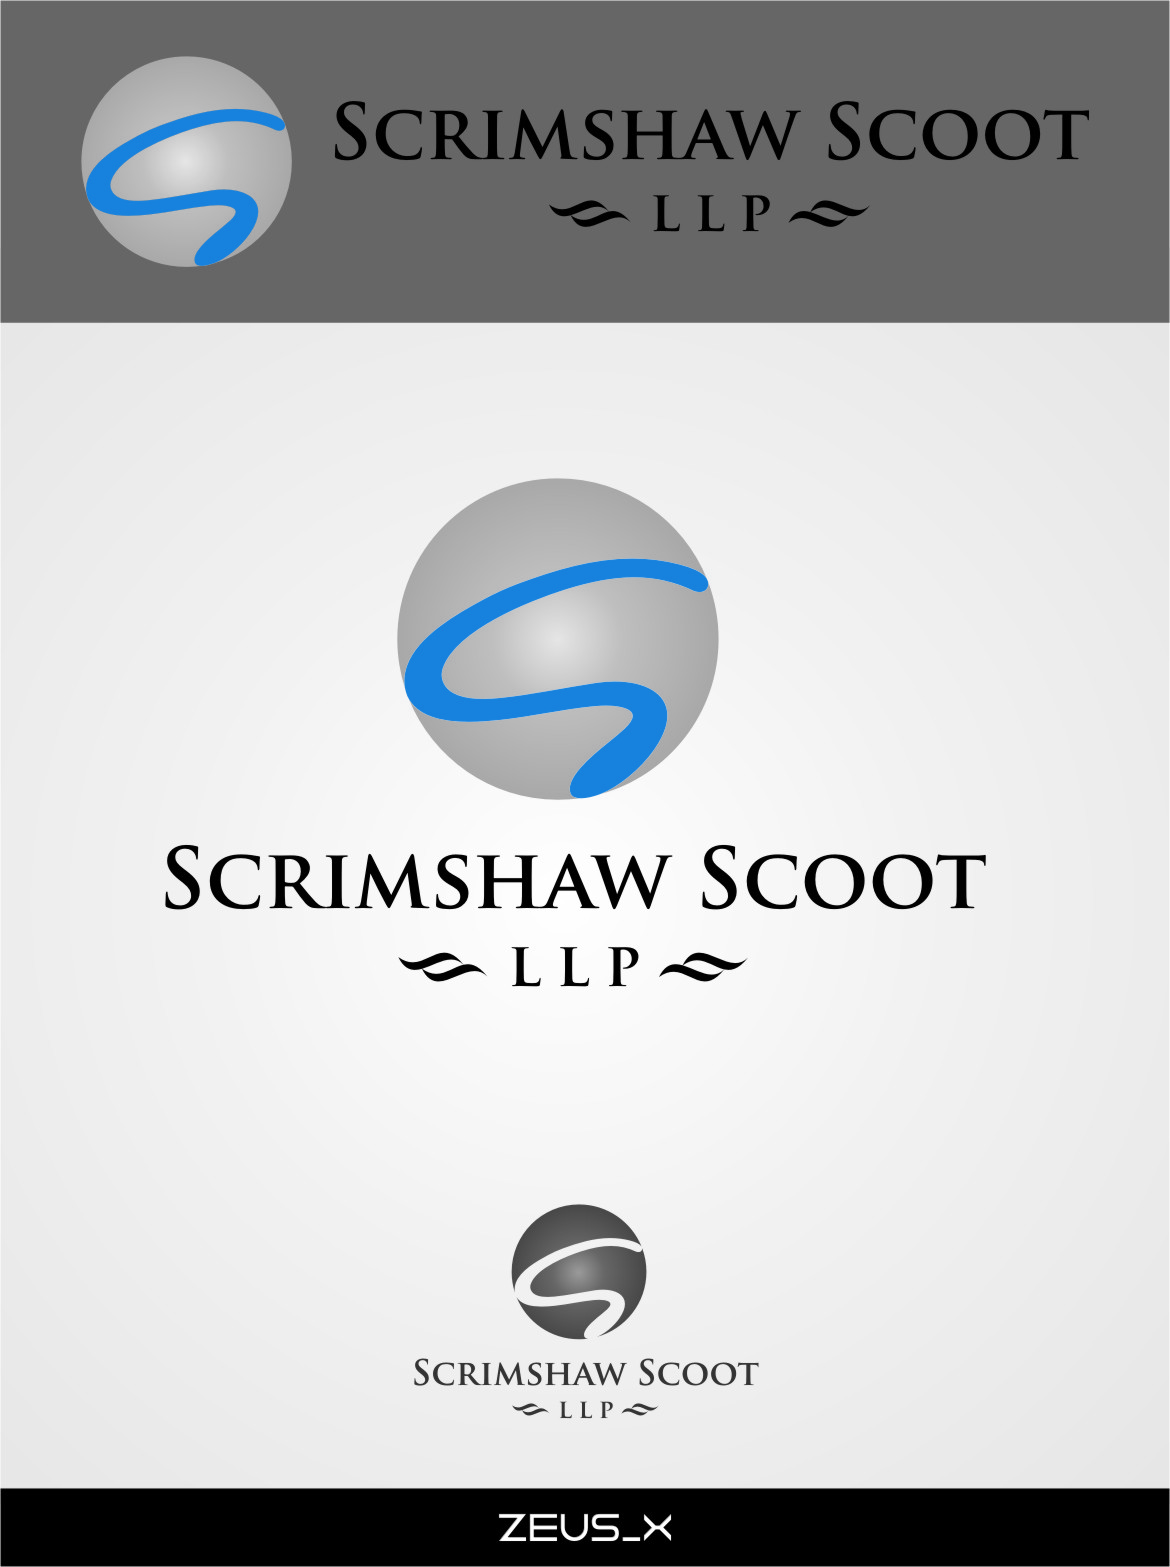 Logo Design by Ngepet_art - Entry No. 134 in the Logo Design Contest Creative Logo Design for Scrimshaw Scott LLP.